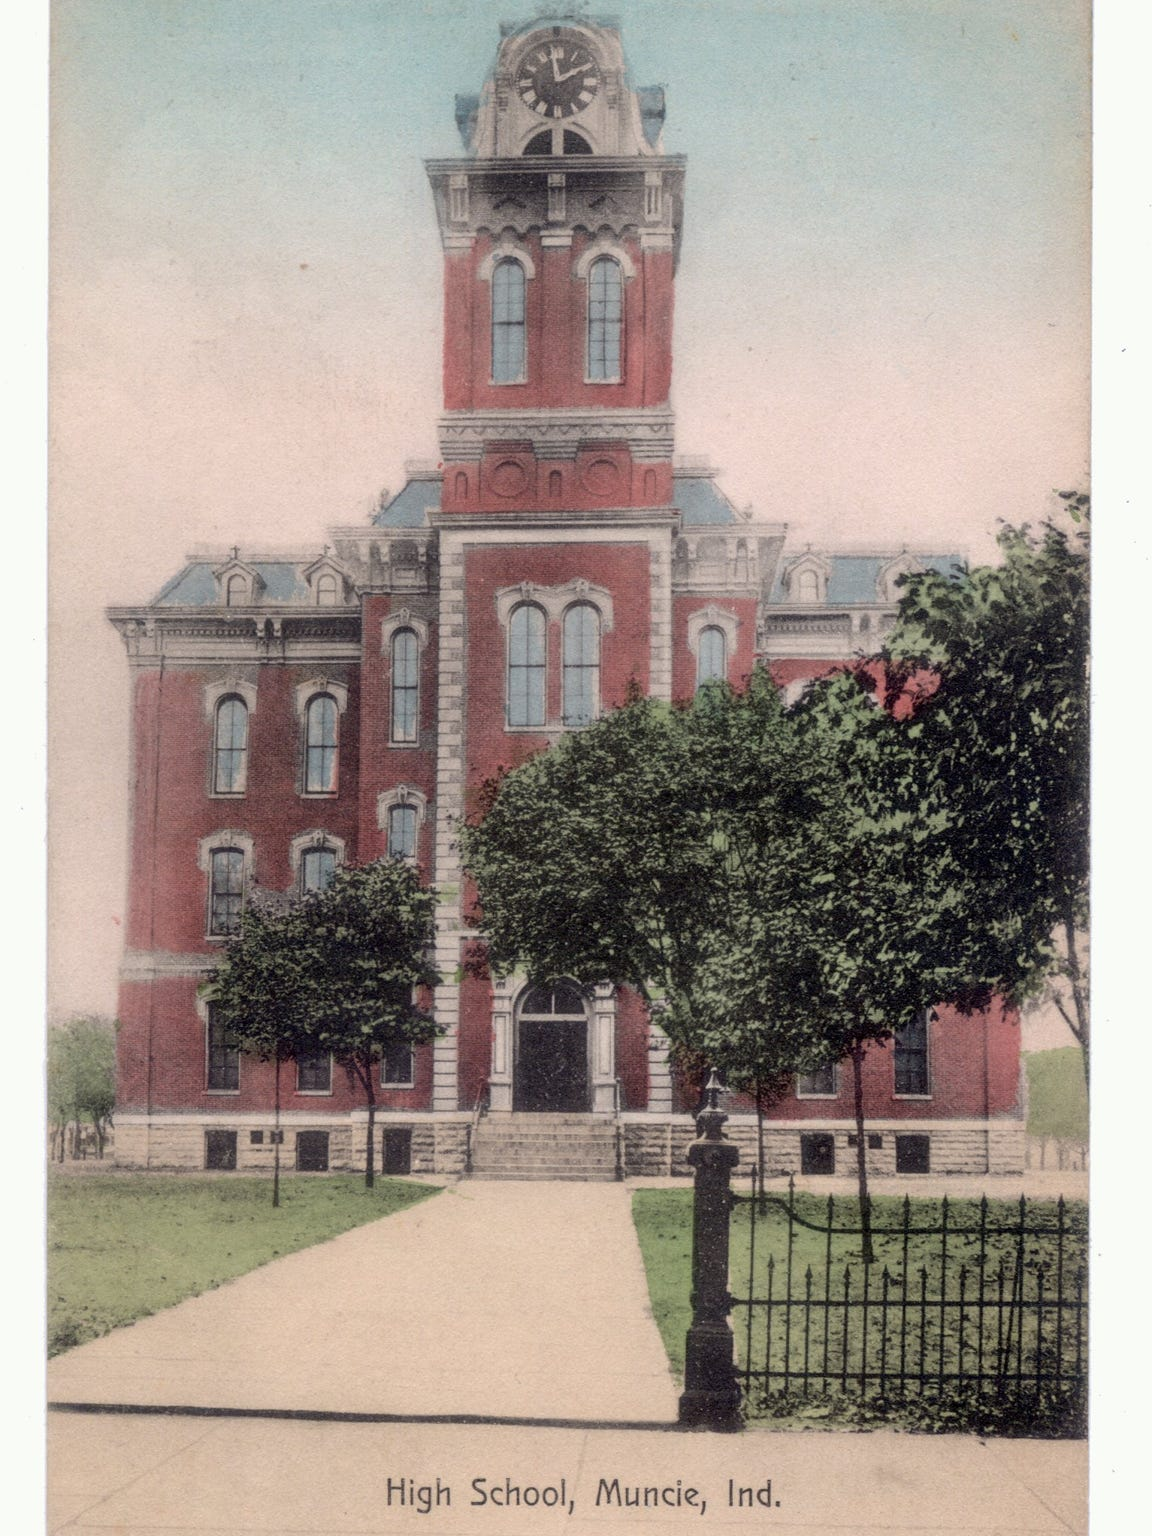 #13 Muncie High School - pre Central - Circa 1910 from postcard.jpg